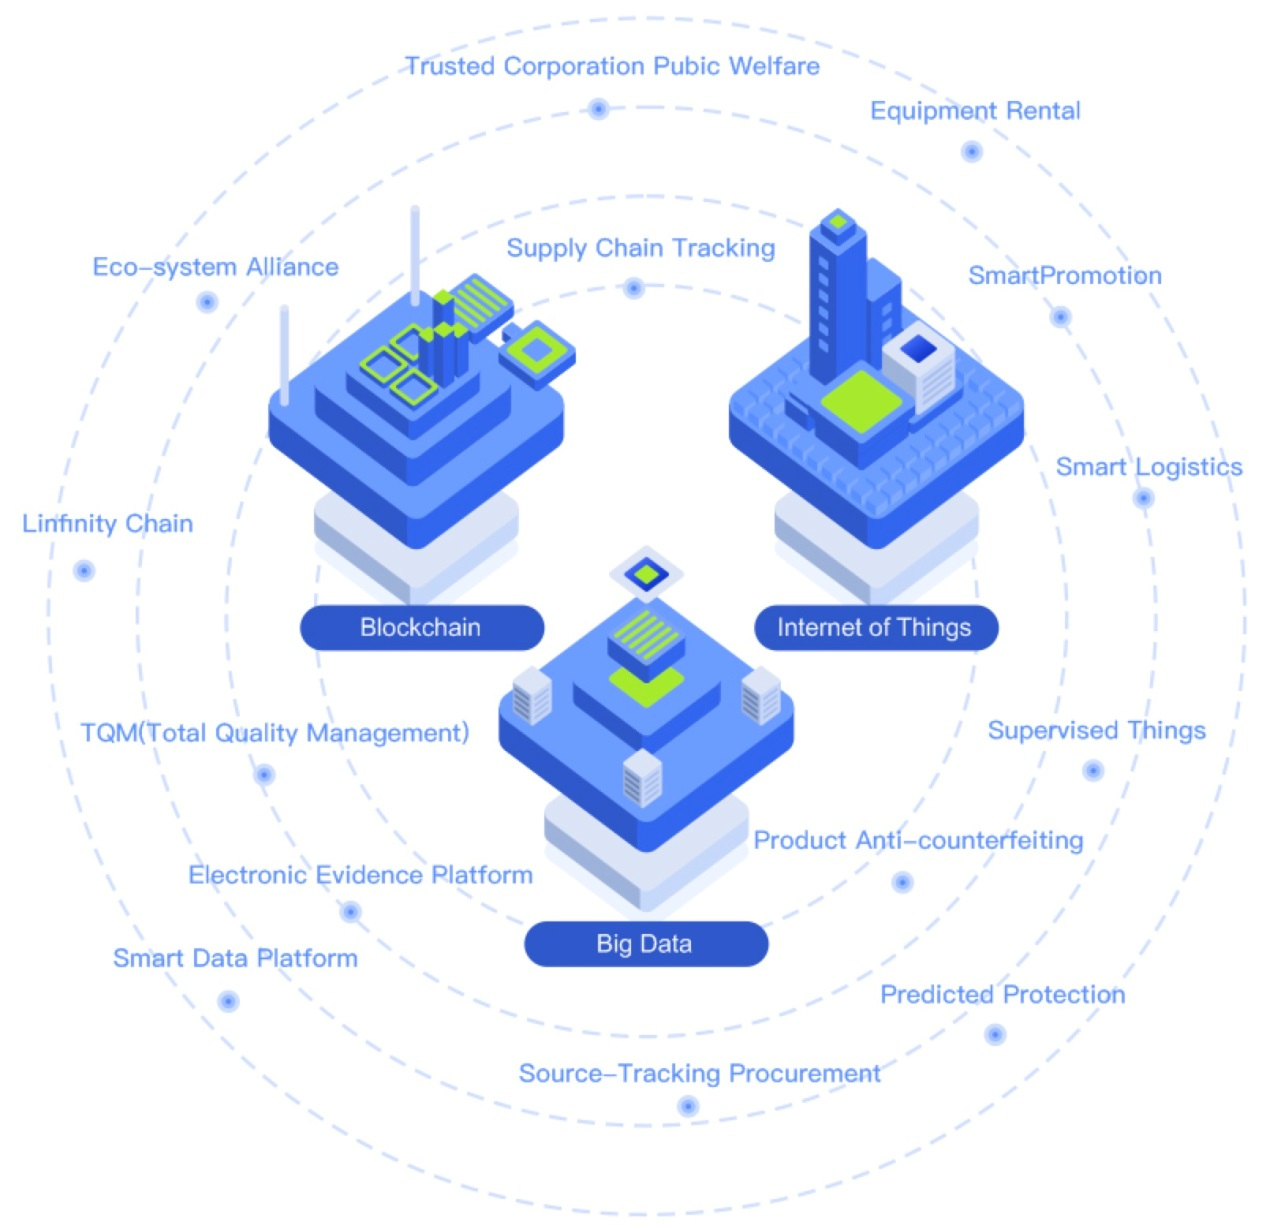 Technology Management Image: Linfinity Explains The Importance And Application Of